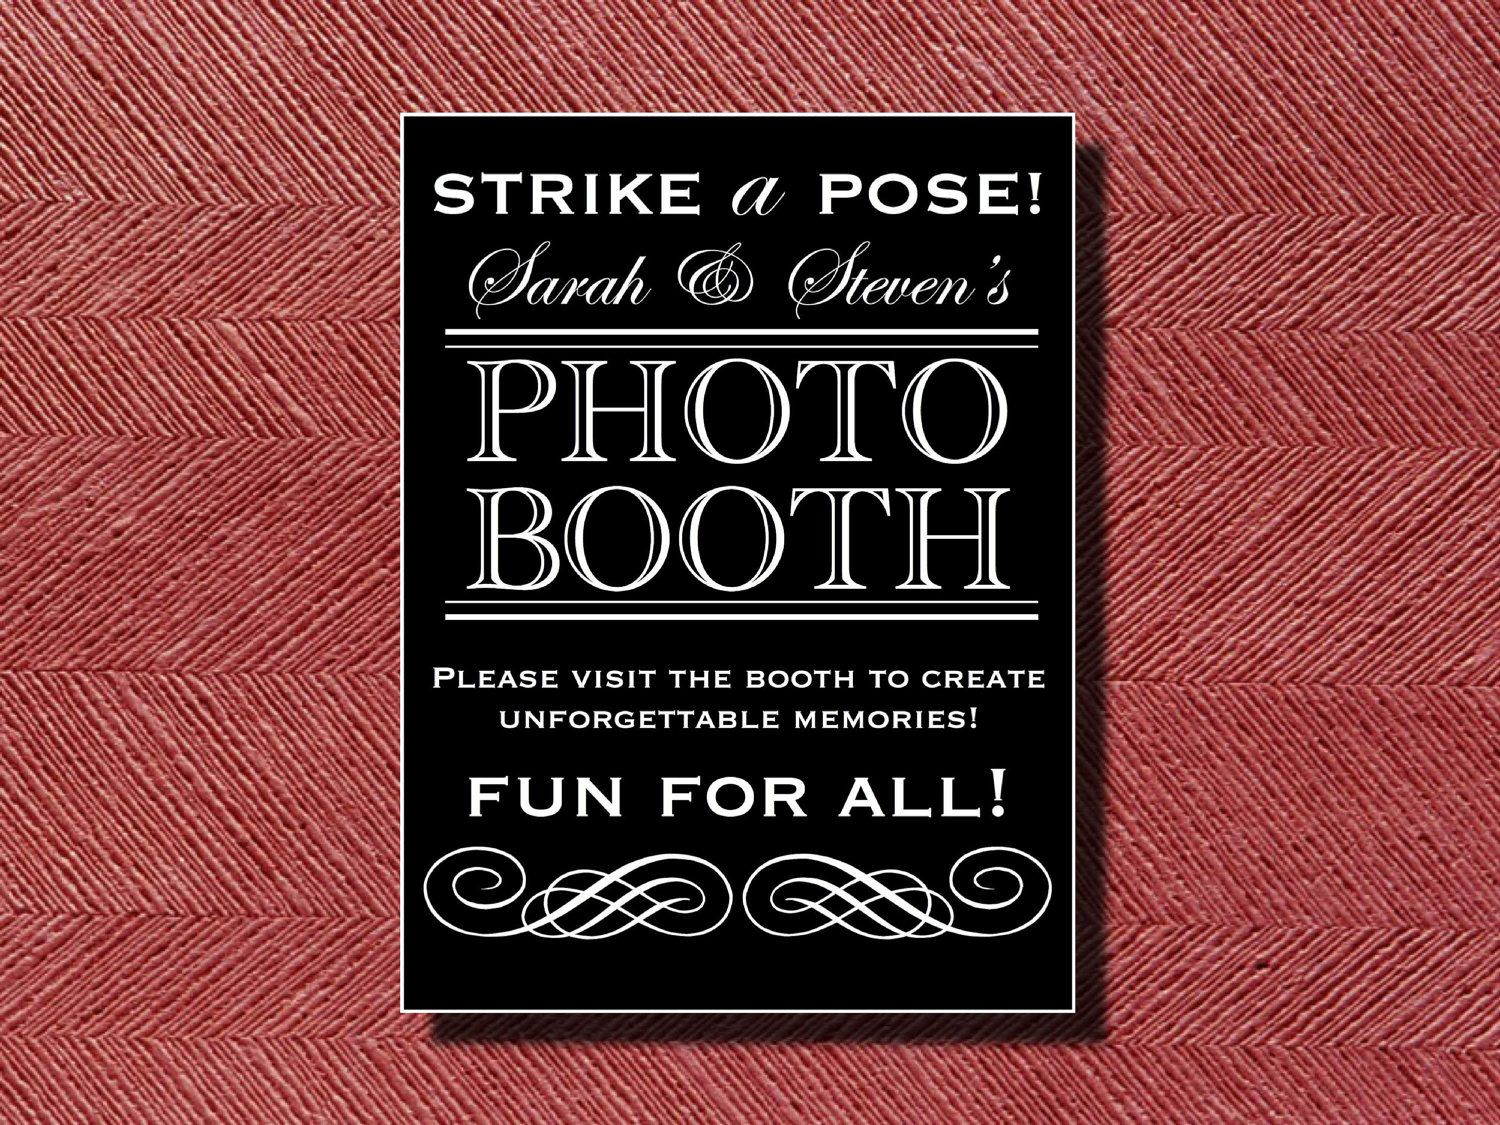 photo booth | Photobooth | Pinterest | Photo booth, Word fonts and ...